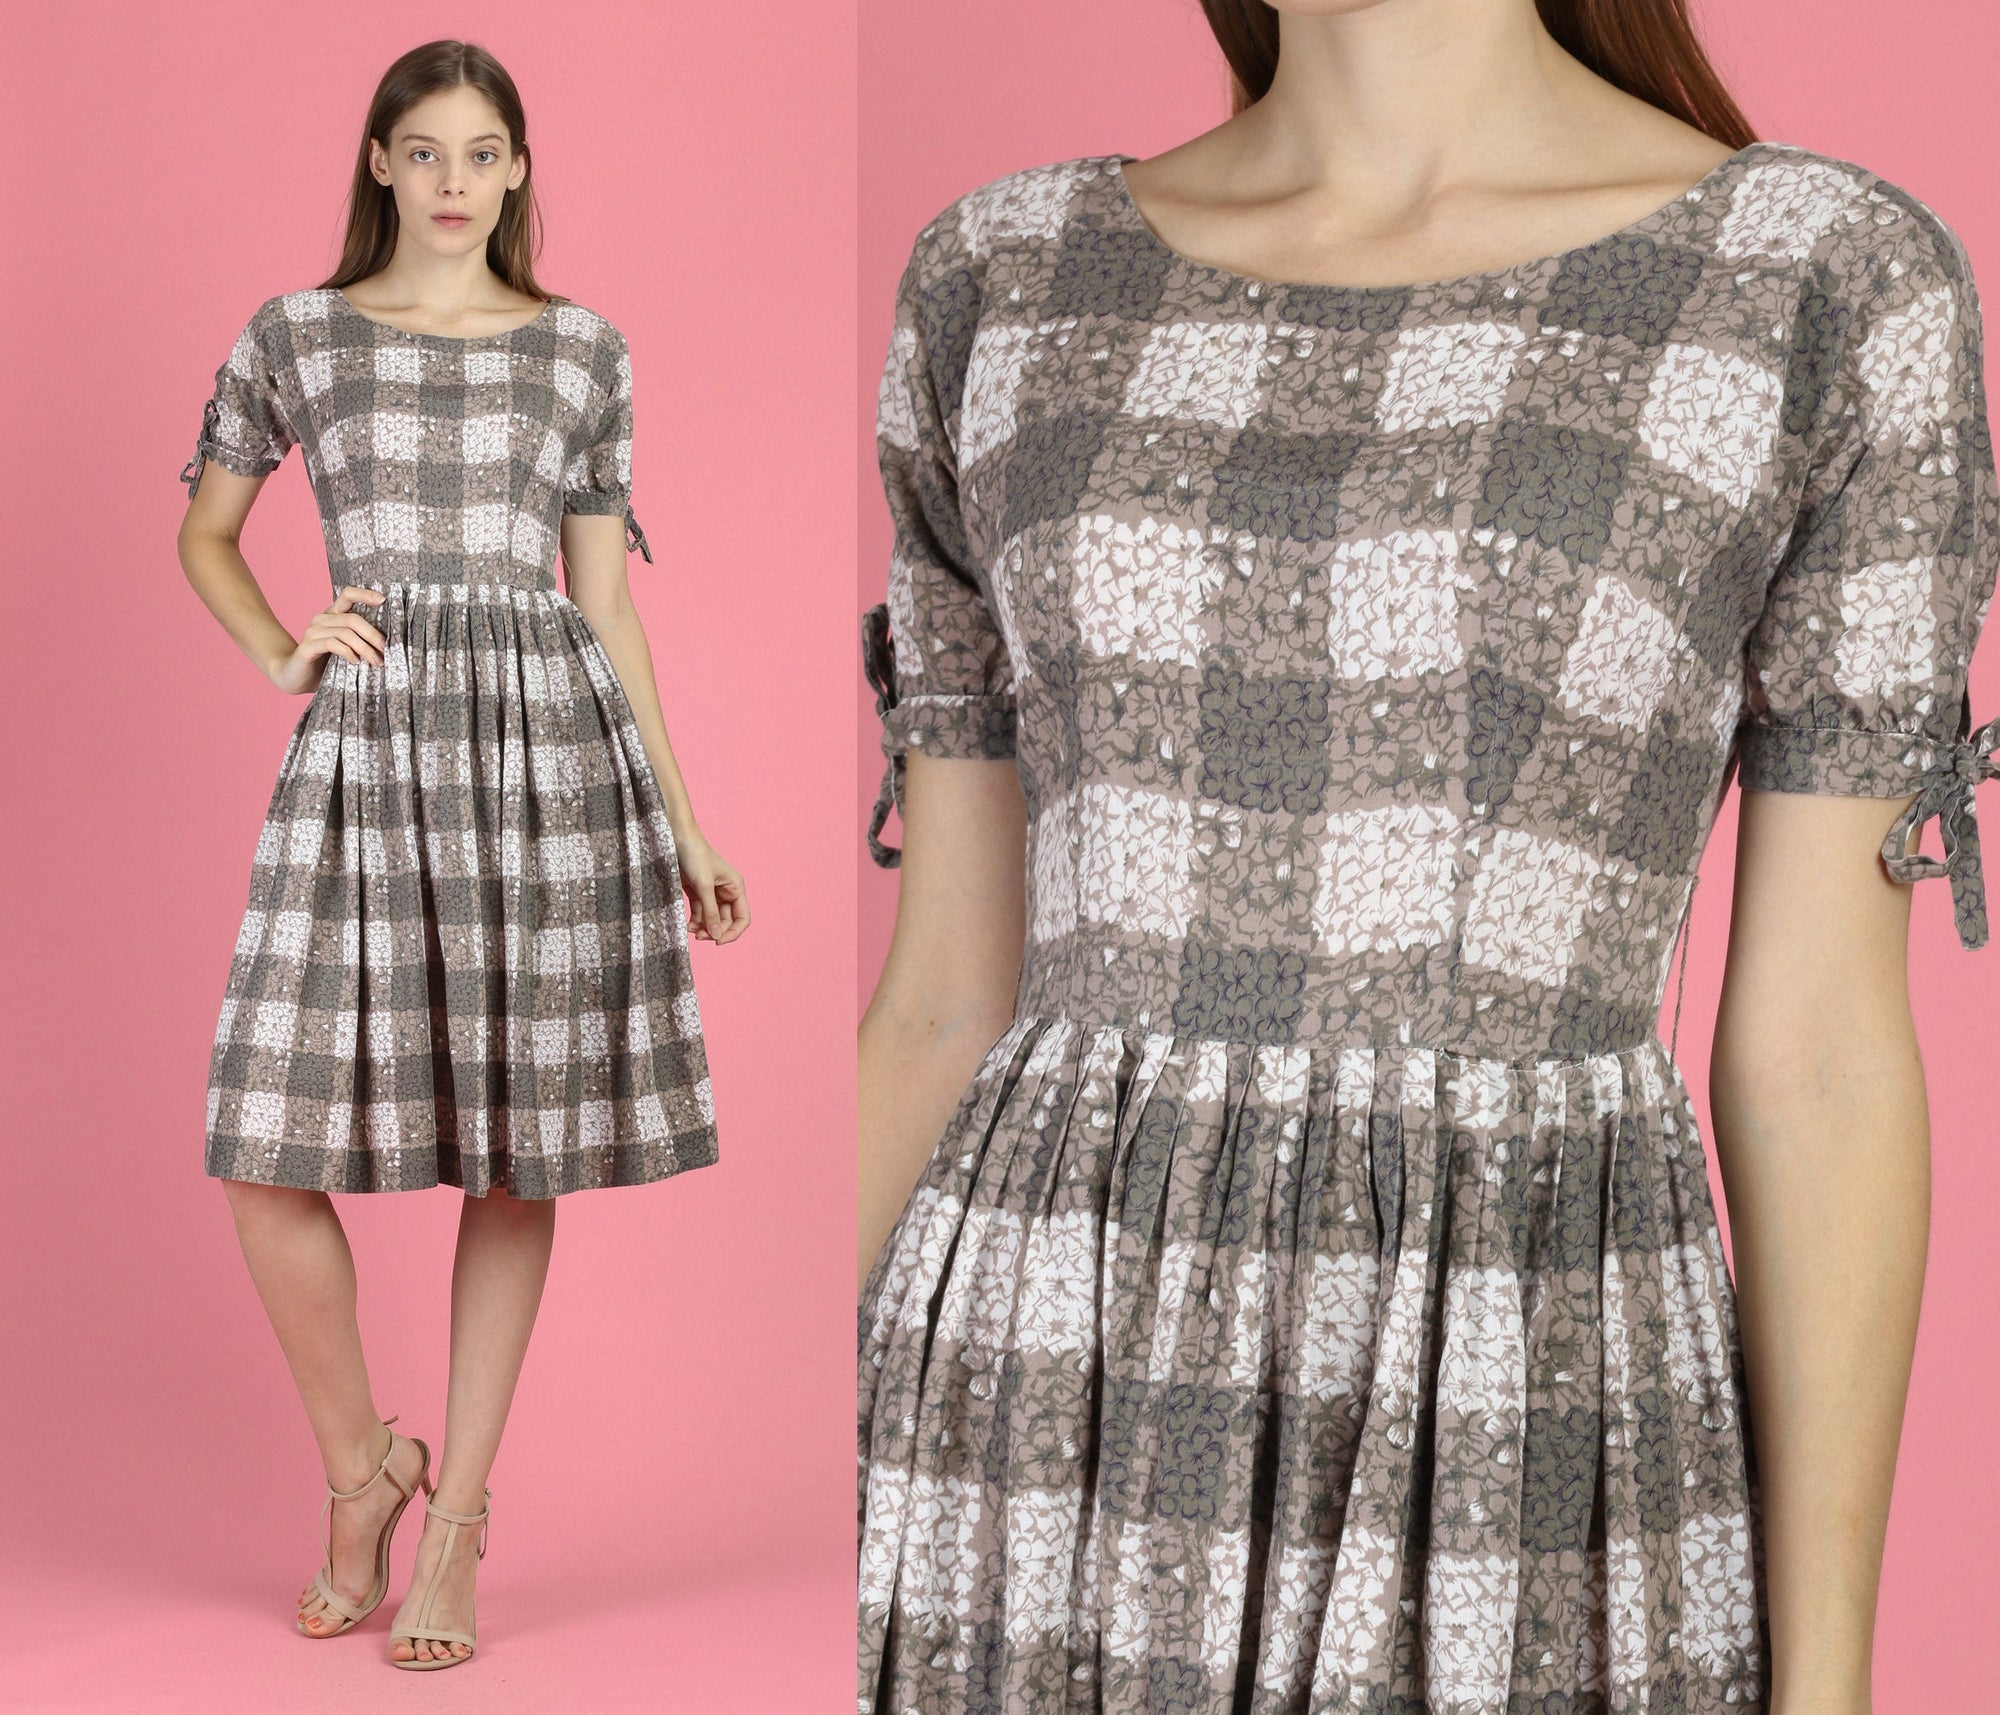 1960s Boho Floral Plaid Day Dress - XS to Small